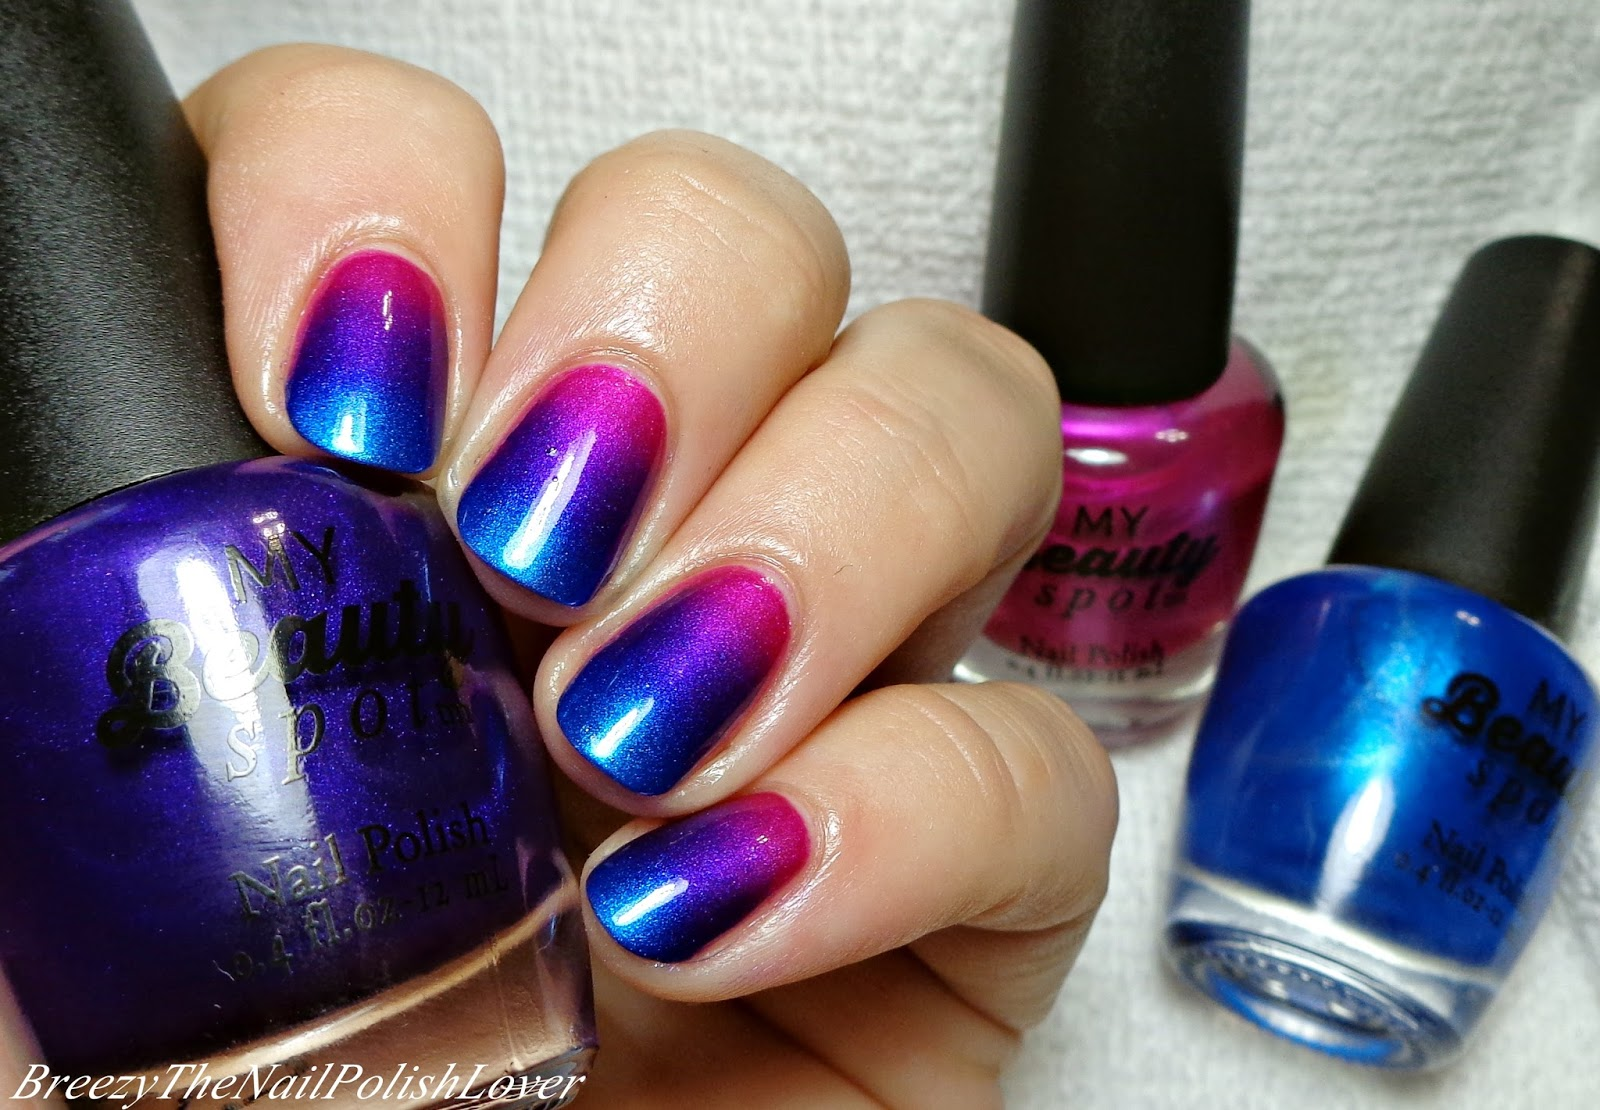 BreezyTheNailPolishLover: My Beauty Spot Nail Polish Nail Design #2!